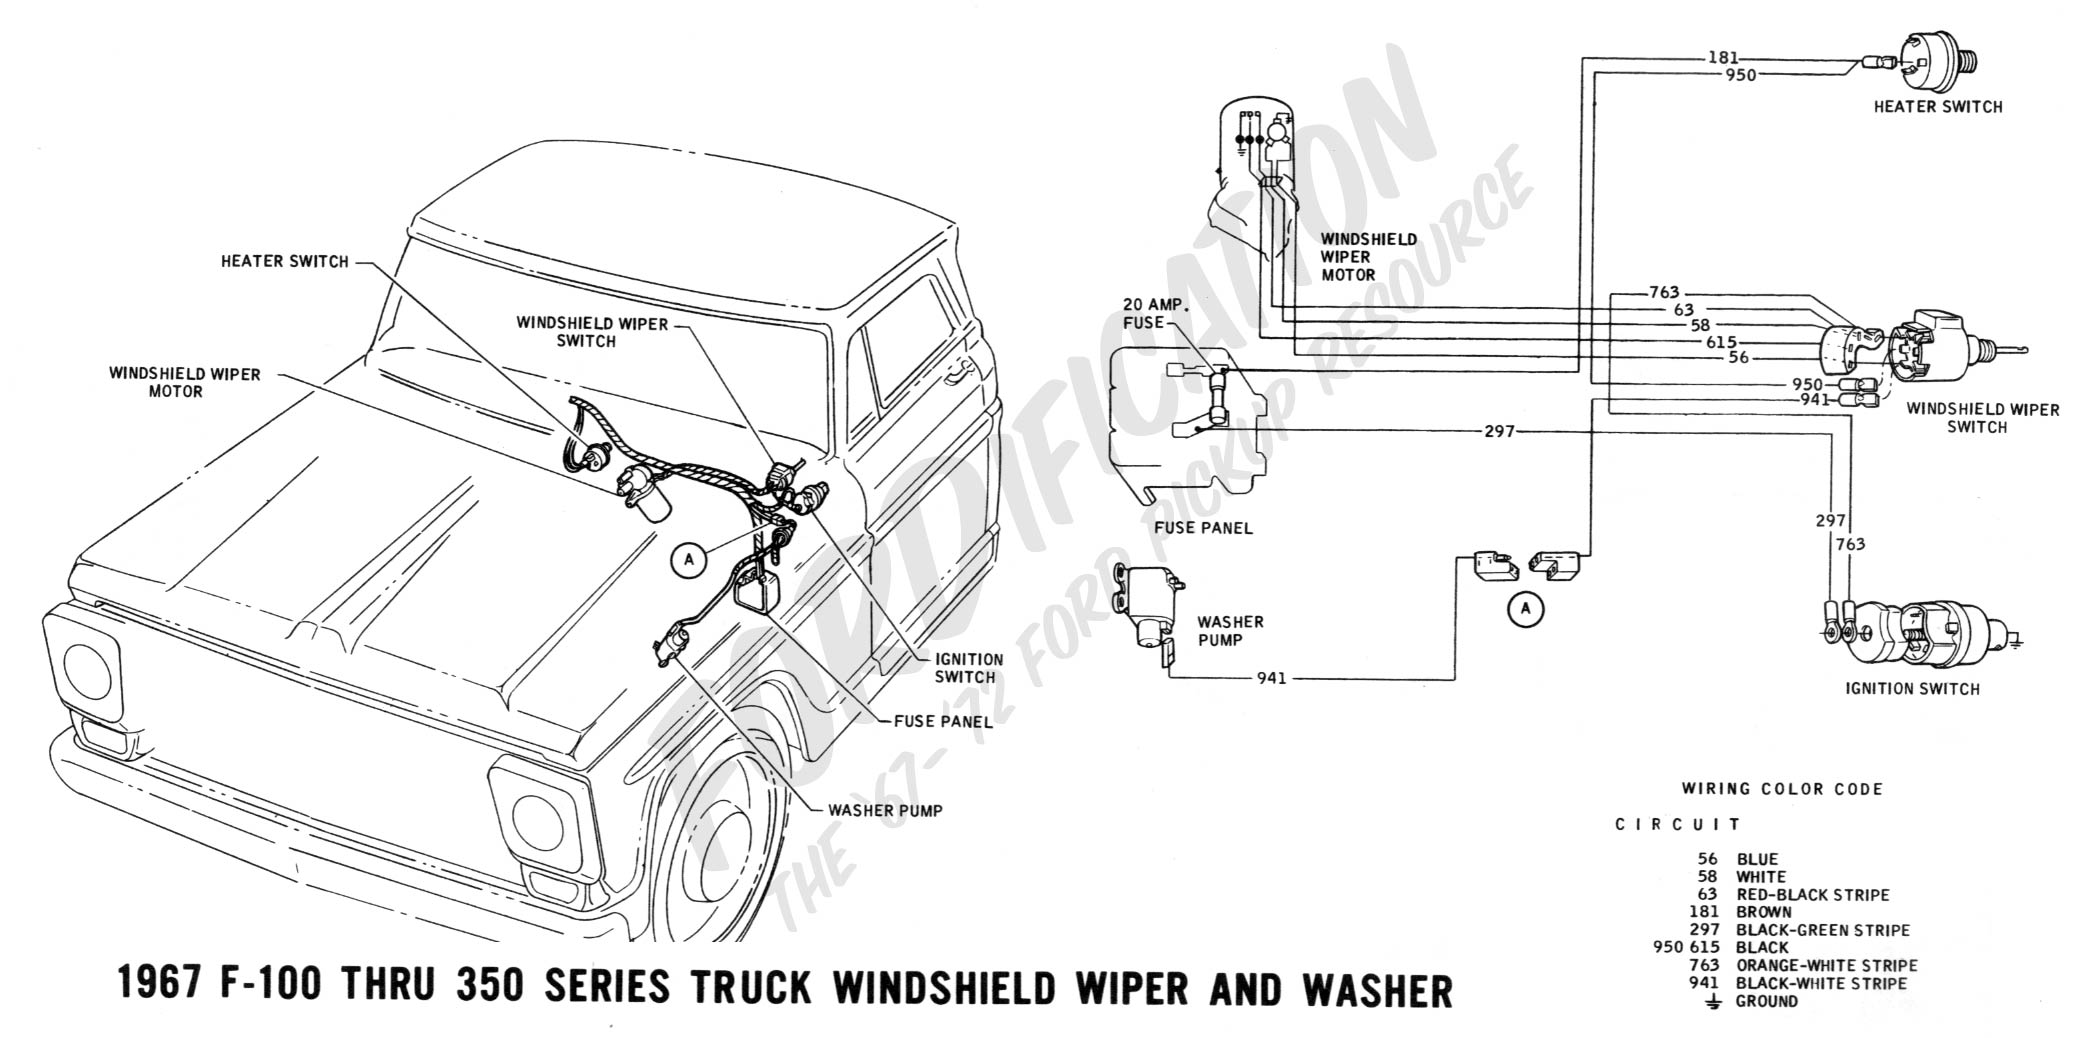 wiring 1967wipers wiper wiring diagram wiper wiring diagram for 1985 chevy vega windshield wiper wiring diagram at bakdesigns.co